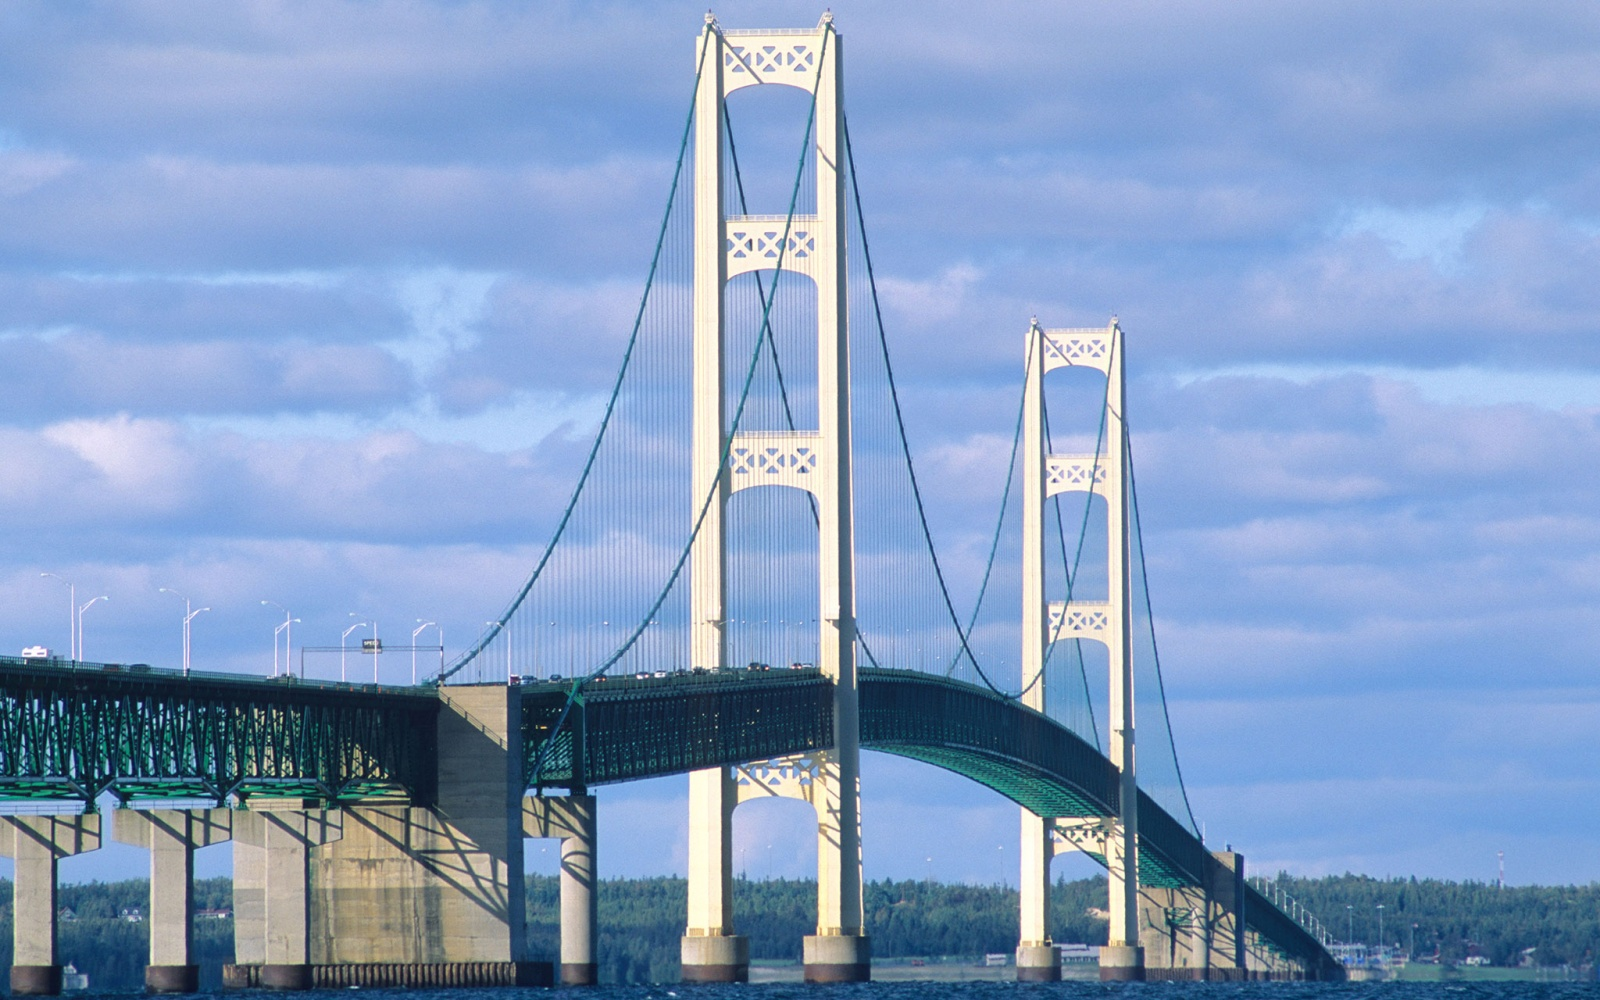 Mackinac Bridge, Mackinaw City, Michigan